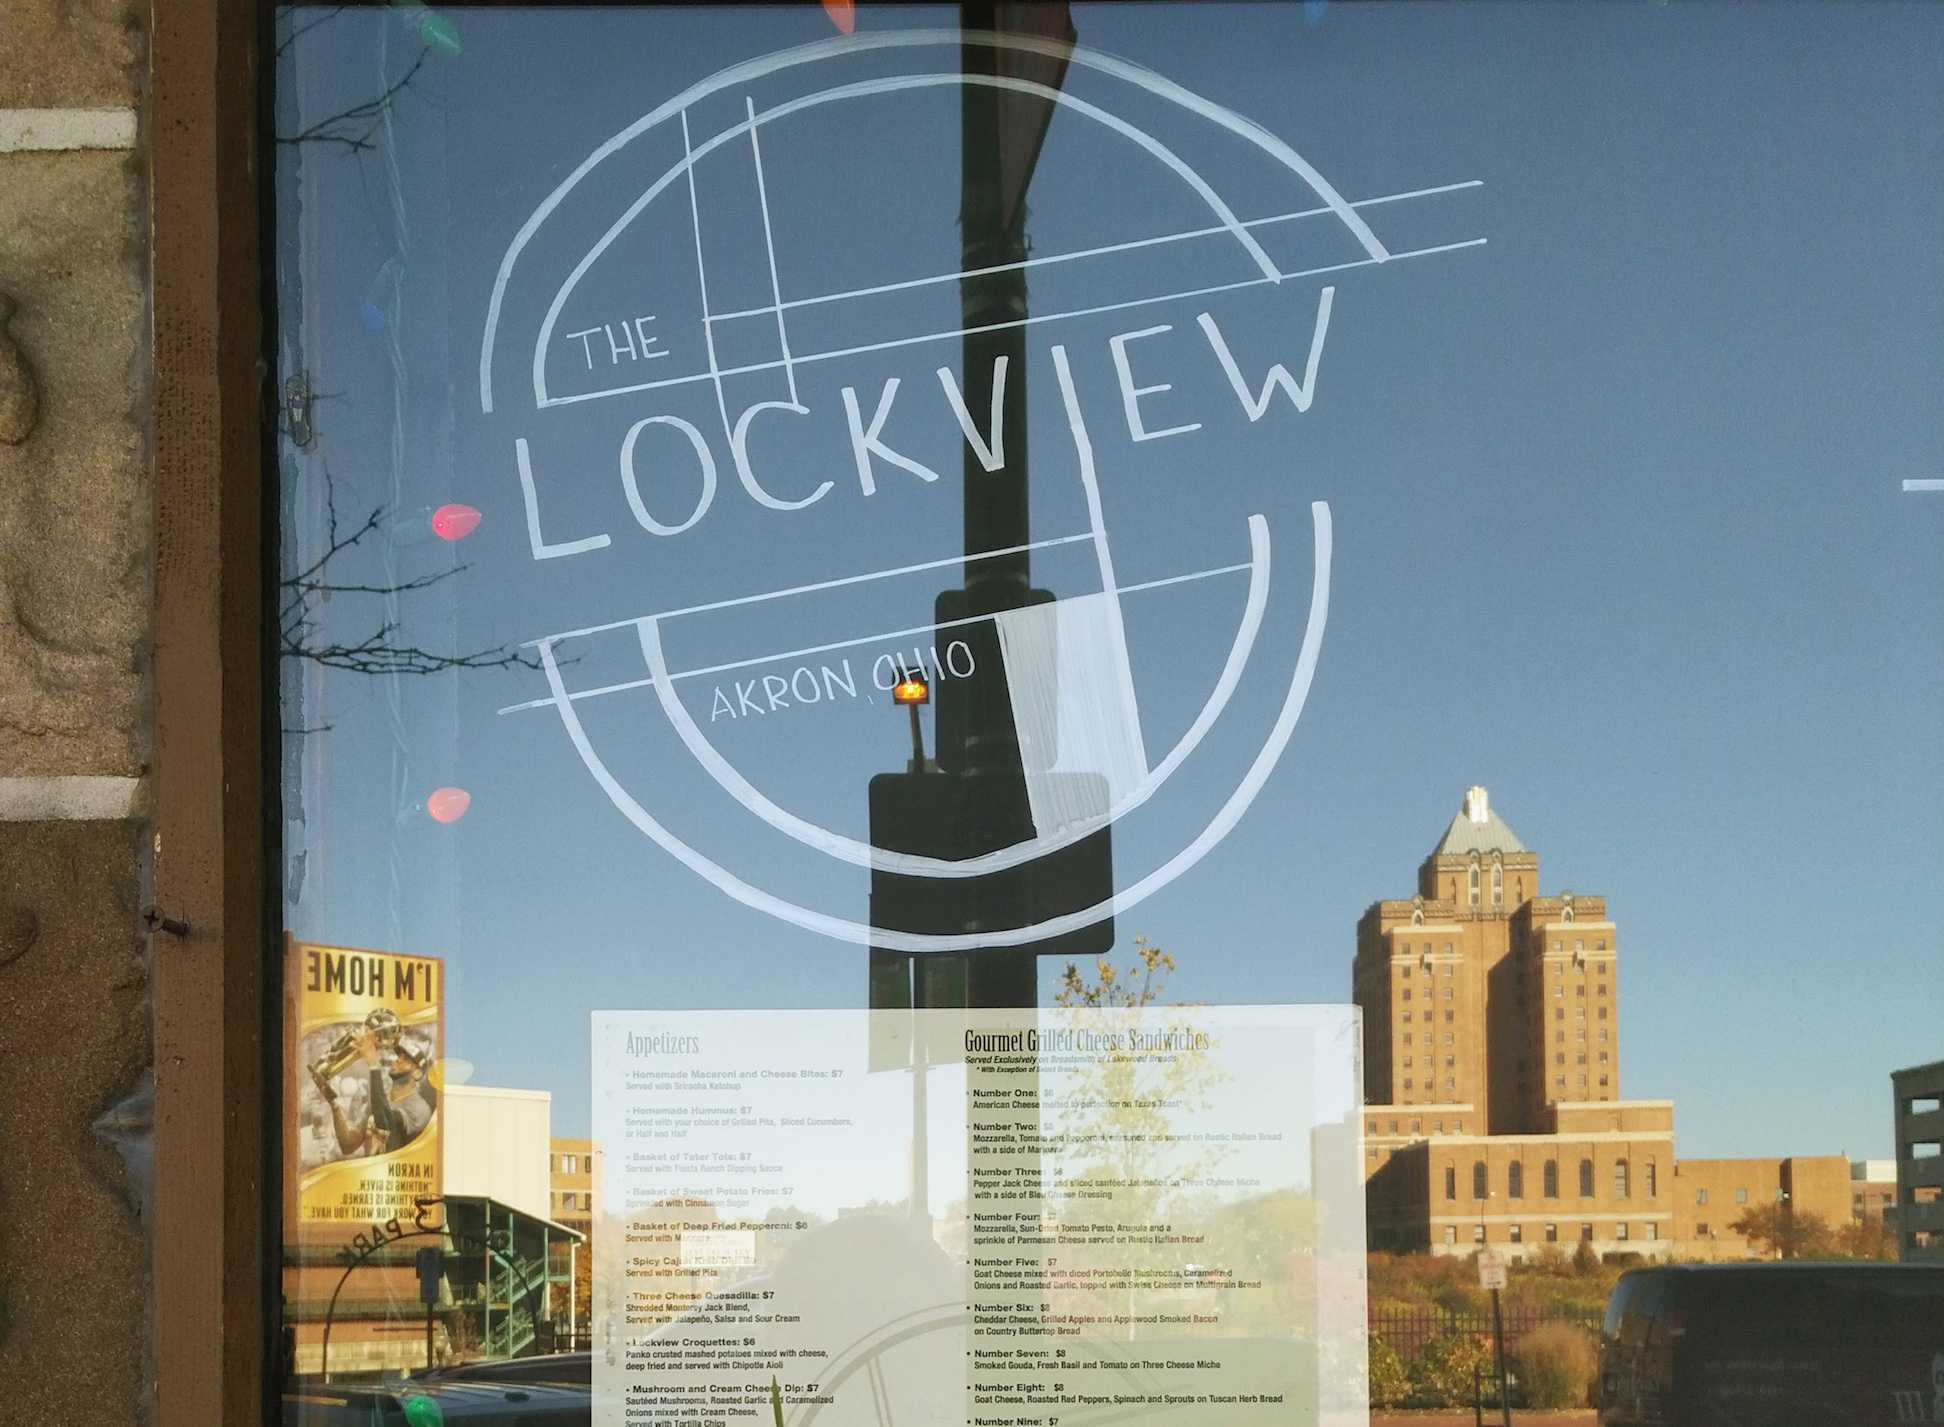 The Lockview entrance featuring the Akron skyline.